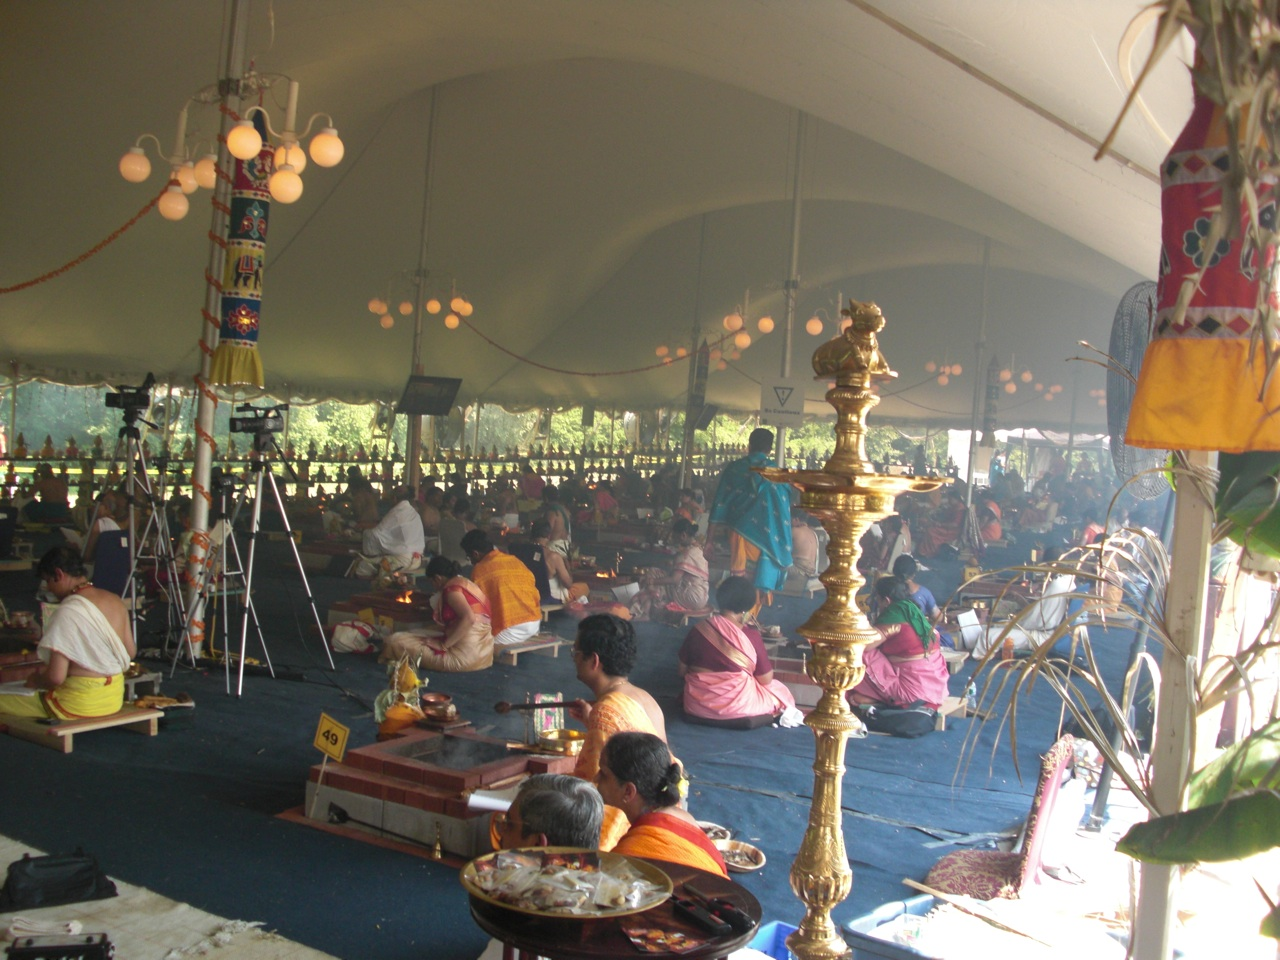 Ekadasa Rudra Homam Main Event Tent. Note: The Cameras Were Prodcasting This Over The Internet For Others To Log On And Enjoy.